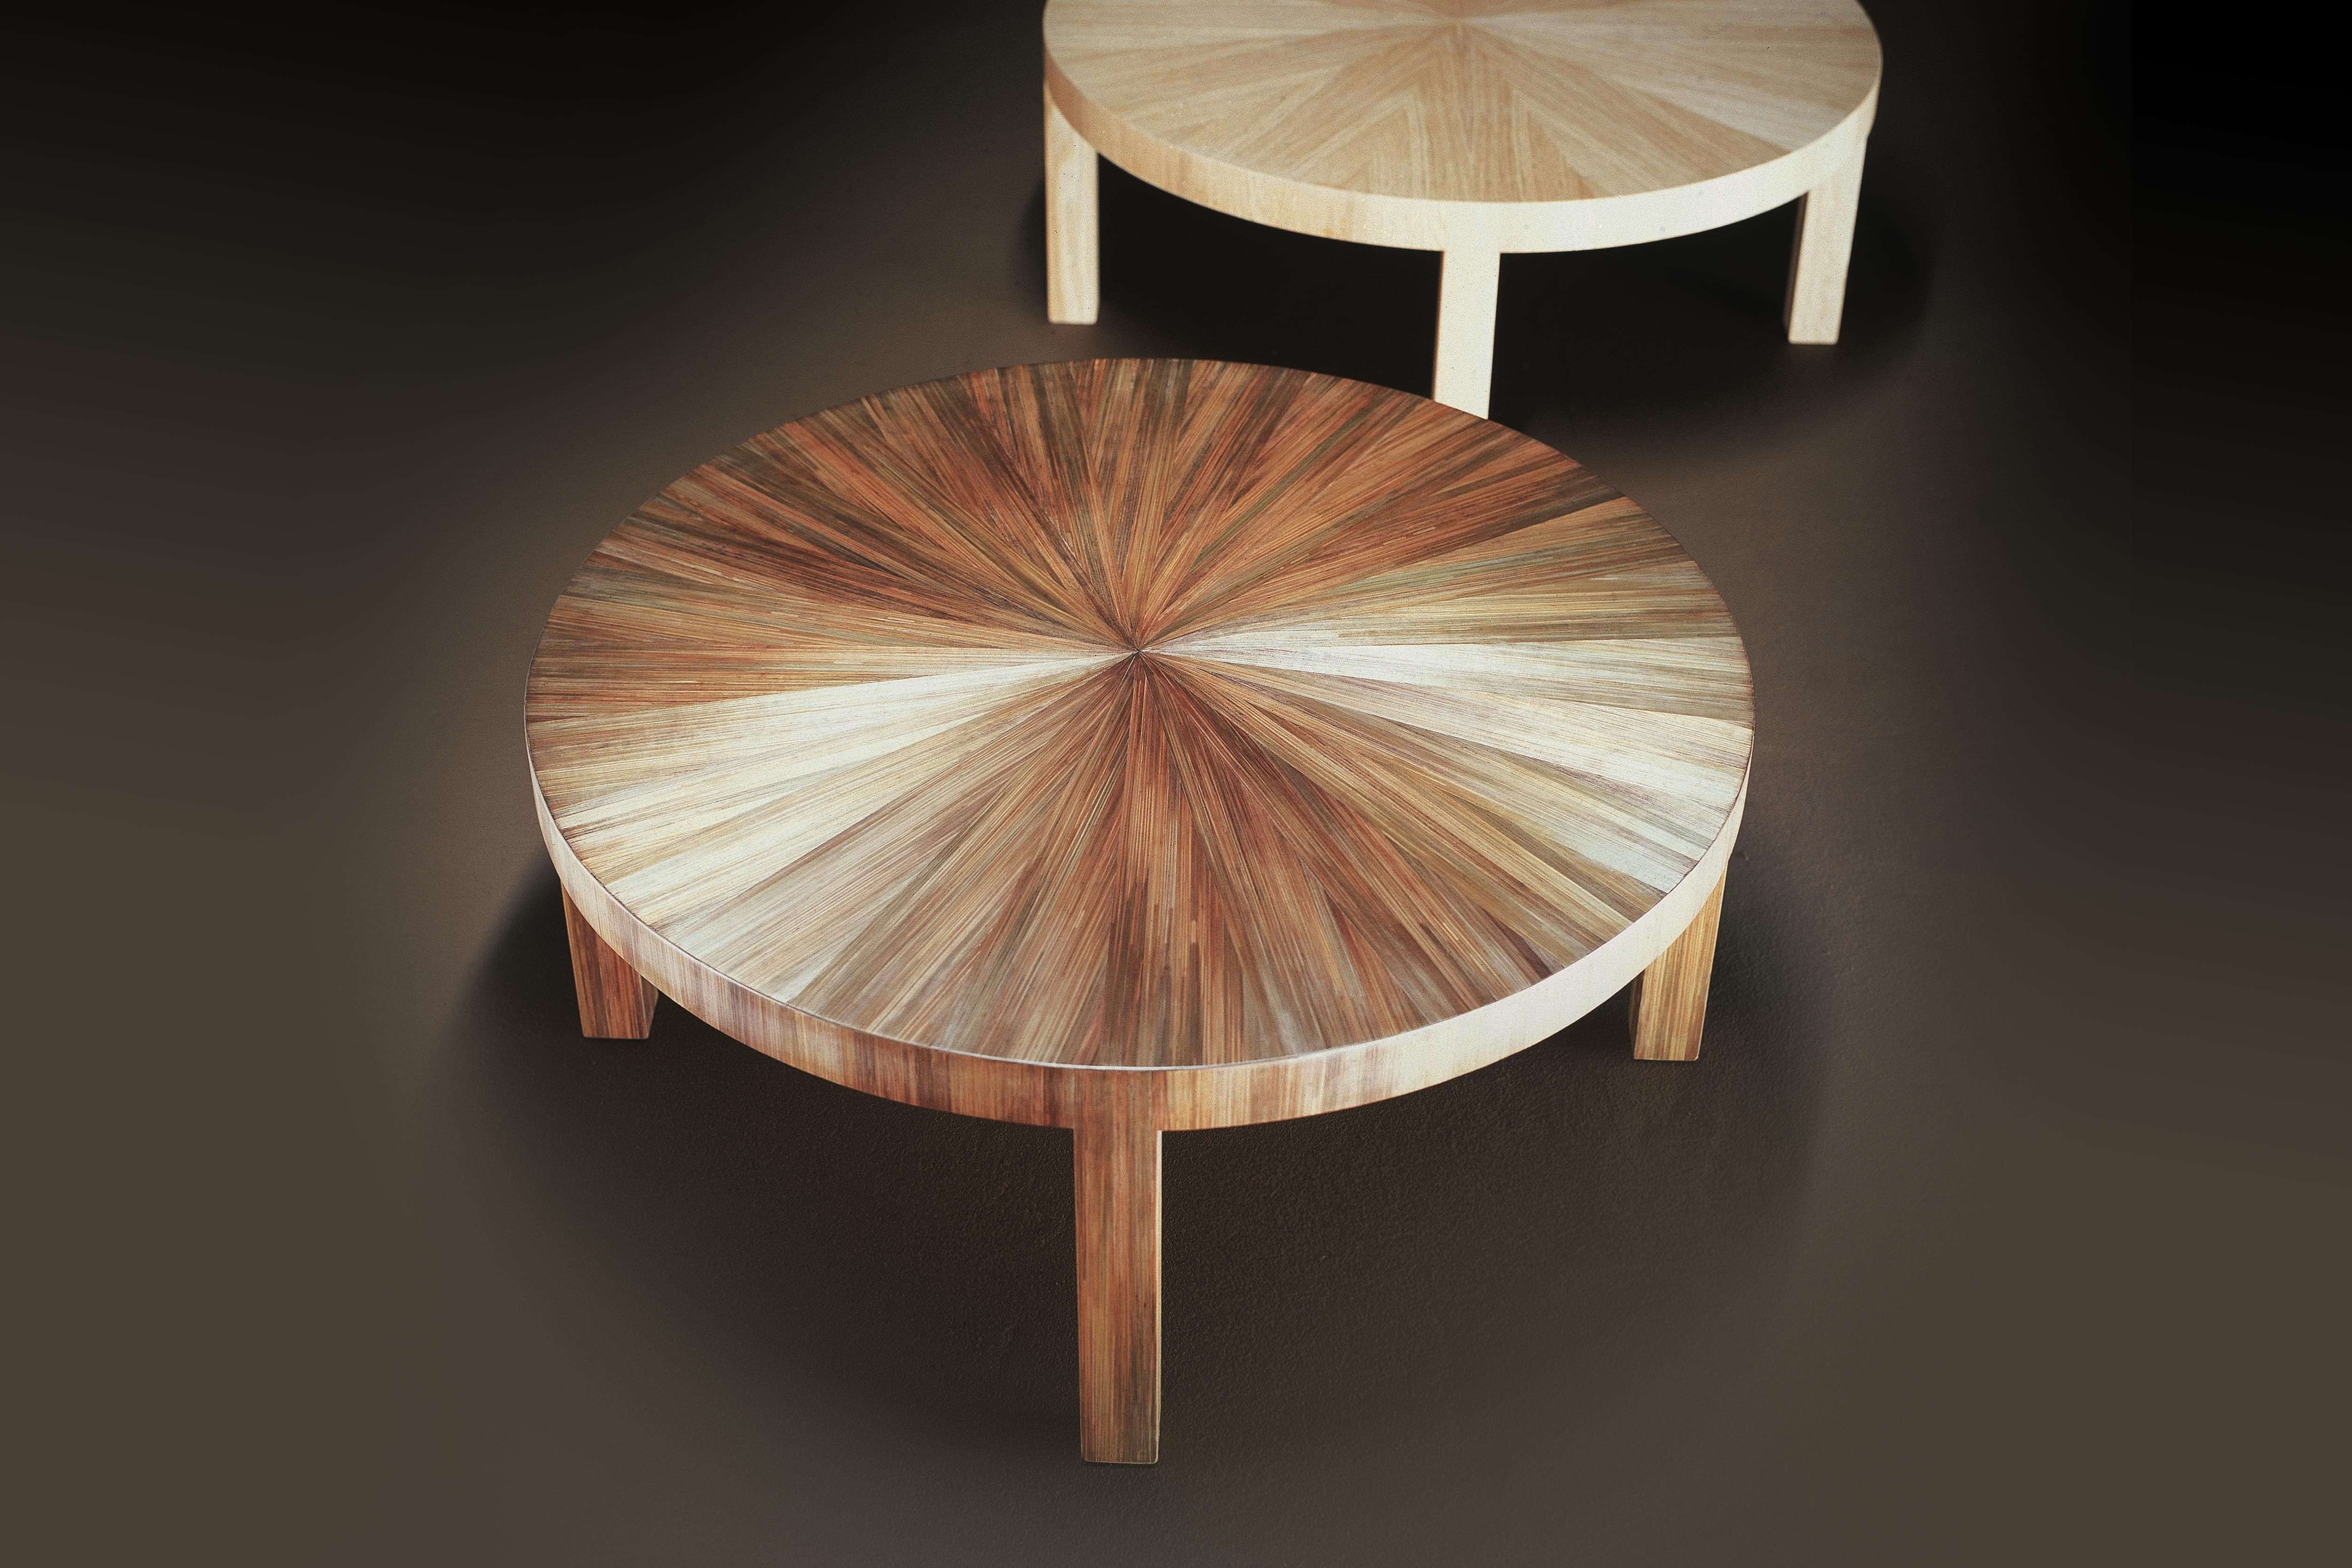 Table Basse Ronde Teck Recycle Marqueterie Lampang Bois Clair Pier Import La Redoute Table Decor Coffee Table